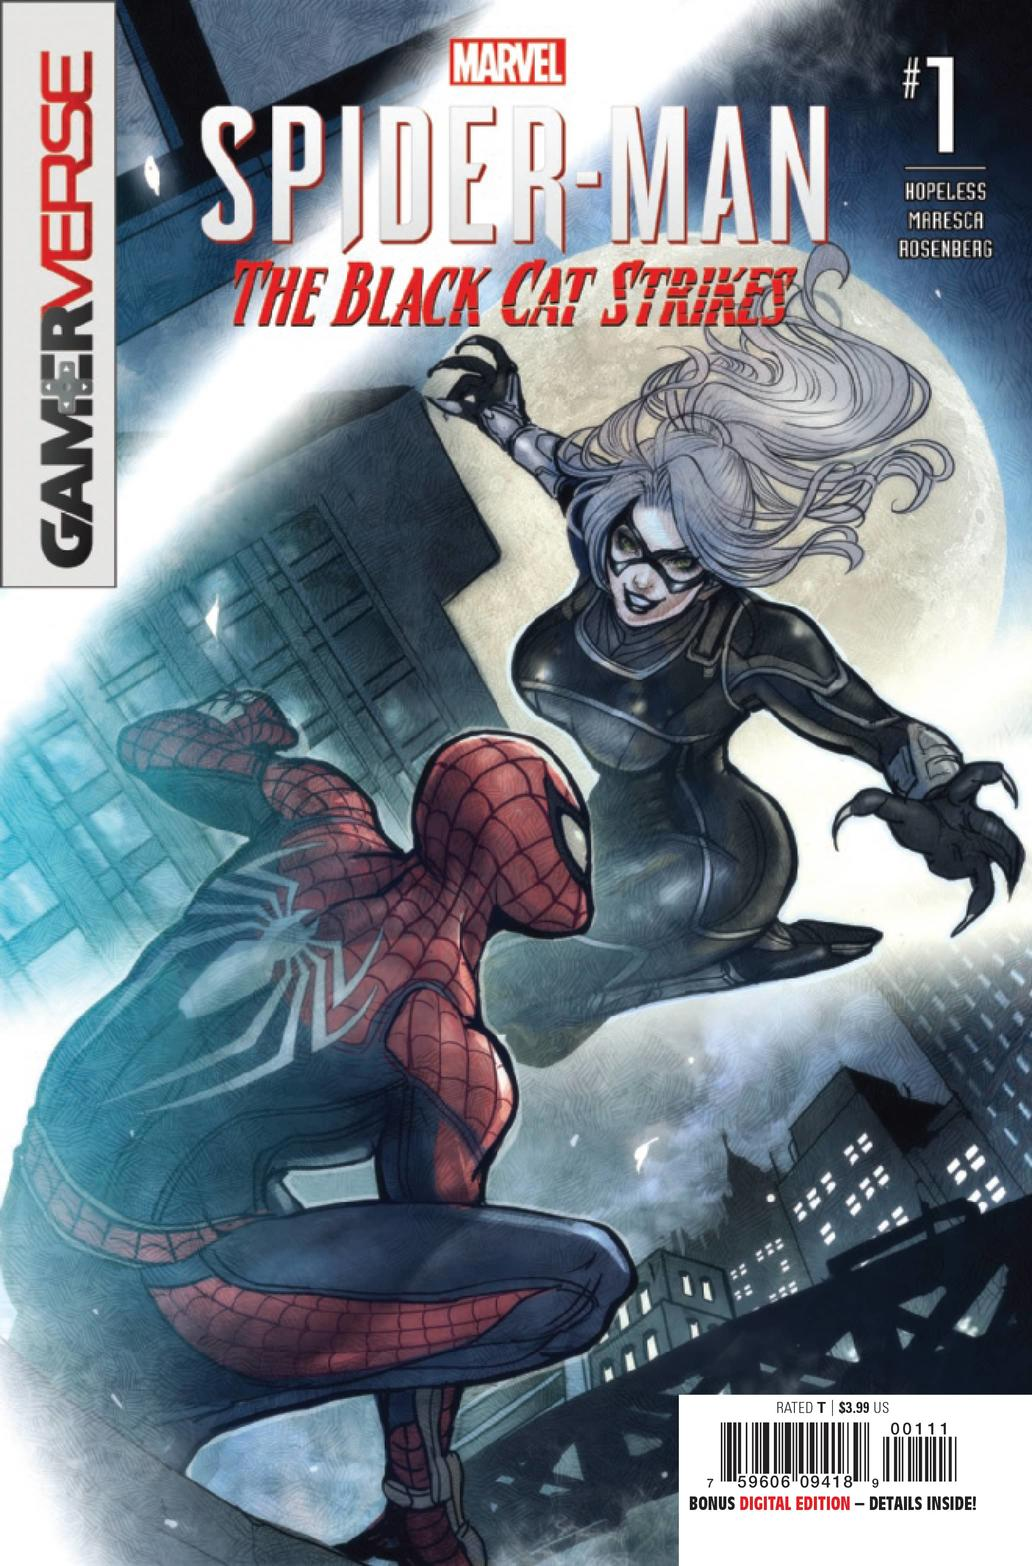 MARVEL'S SPIDER-MAN: THE BLACK CAT STRIKES #1 — Main Cover by Sana Takeda